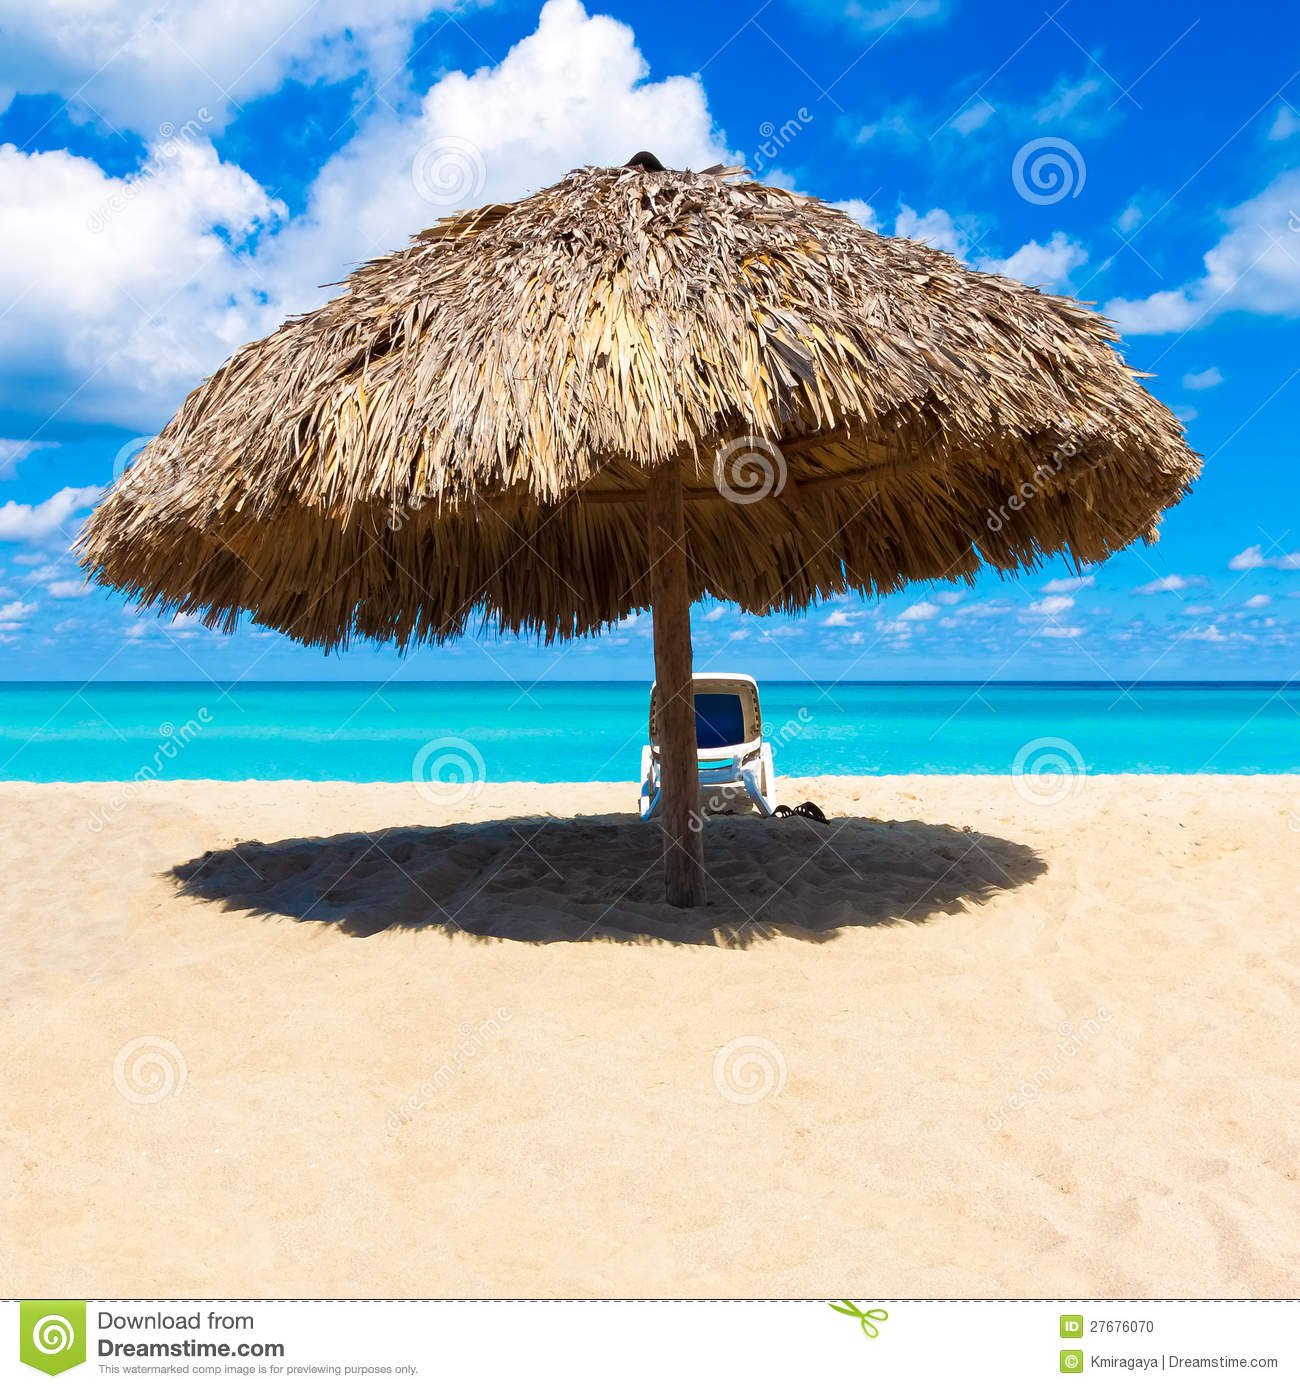 Caribbean Beach: Umbrella And Beach Bed On A Caribbean Beach Stock Photo